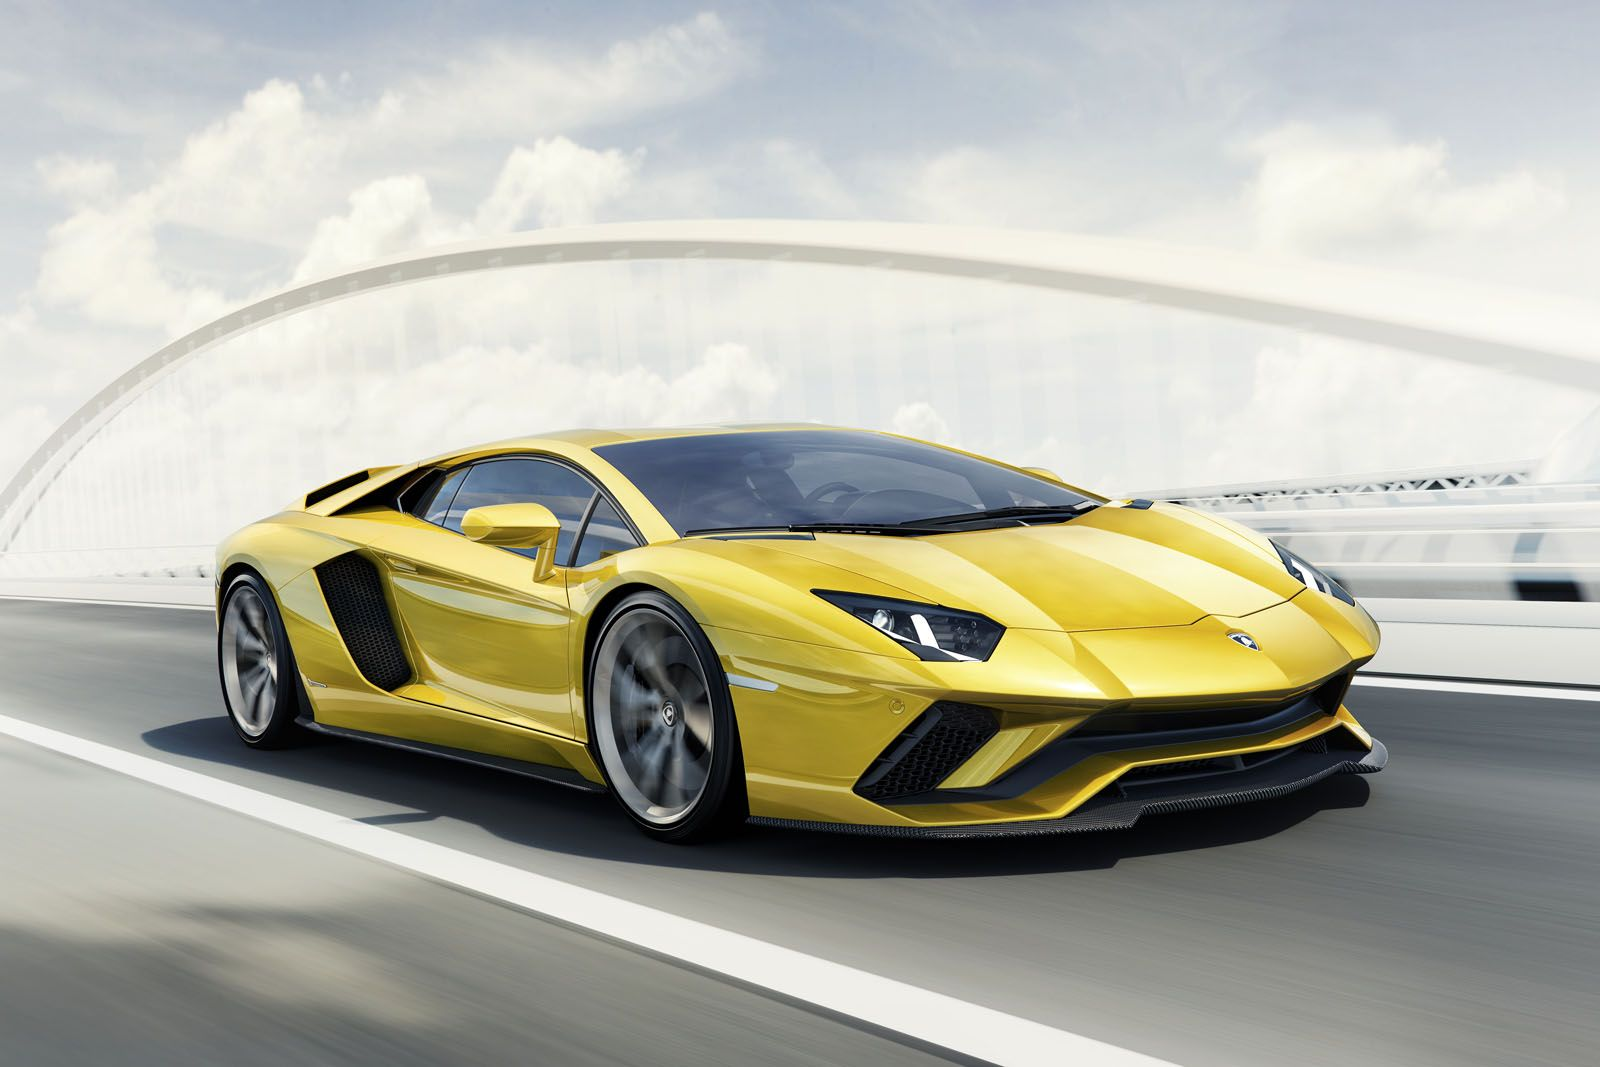 lamborghini alt supercar hybrid lease asterion takeover research leasebusters with hp en canada paris pioneers wows s asp for teaser